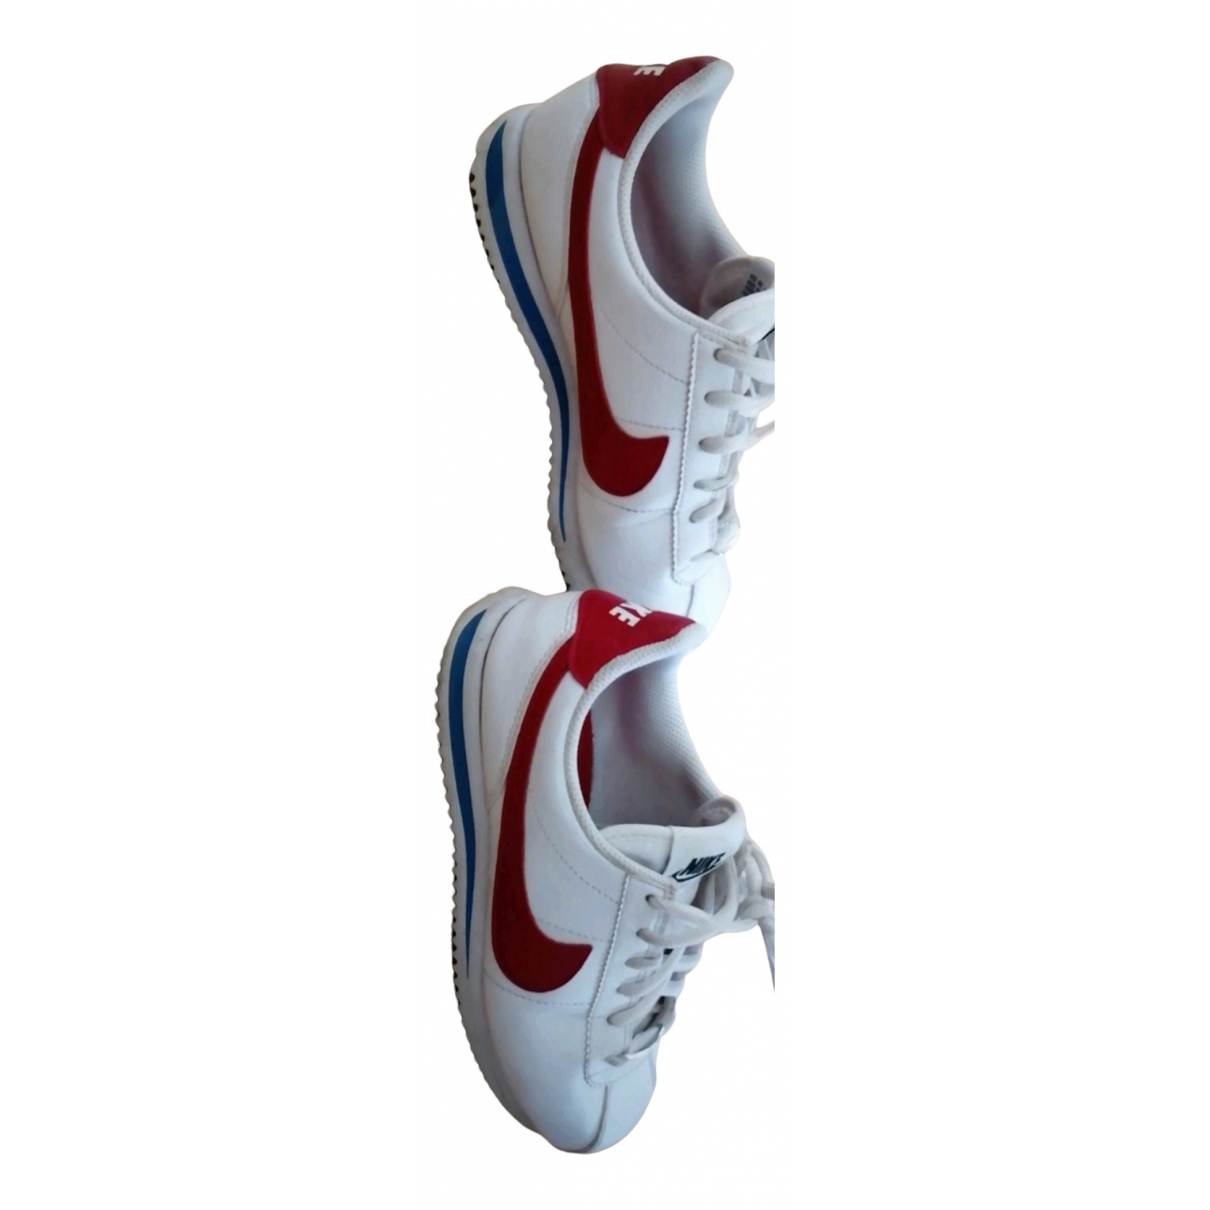 Nike Cortez White Leather Trainers for Women 36 EU